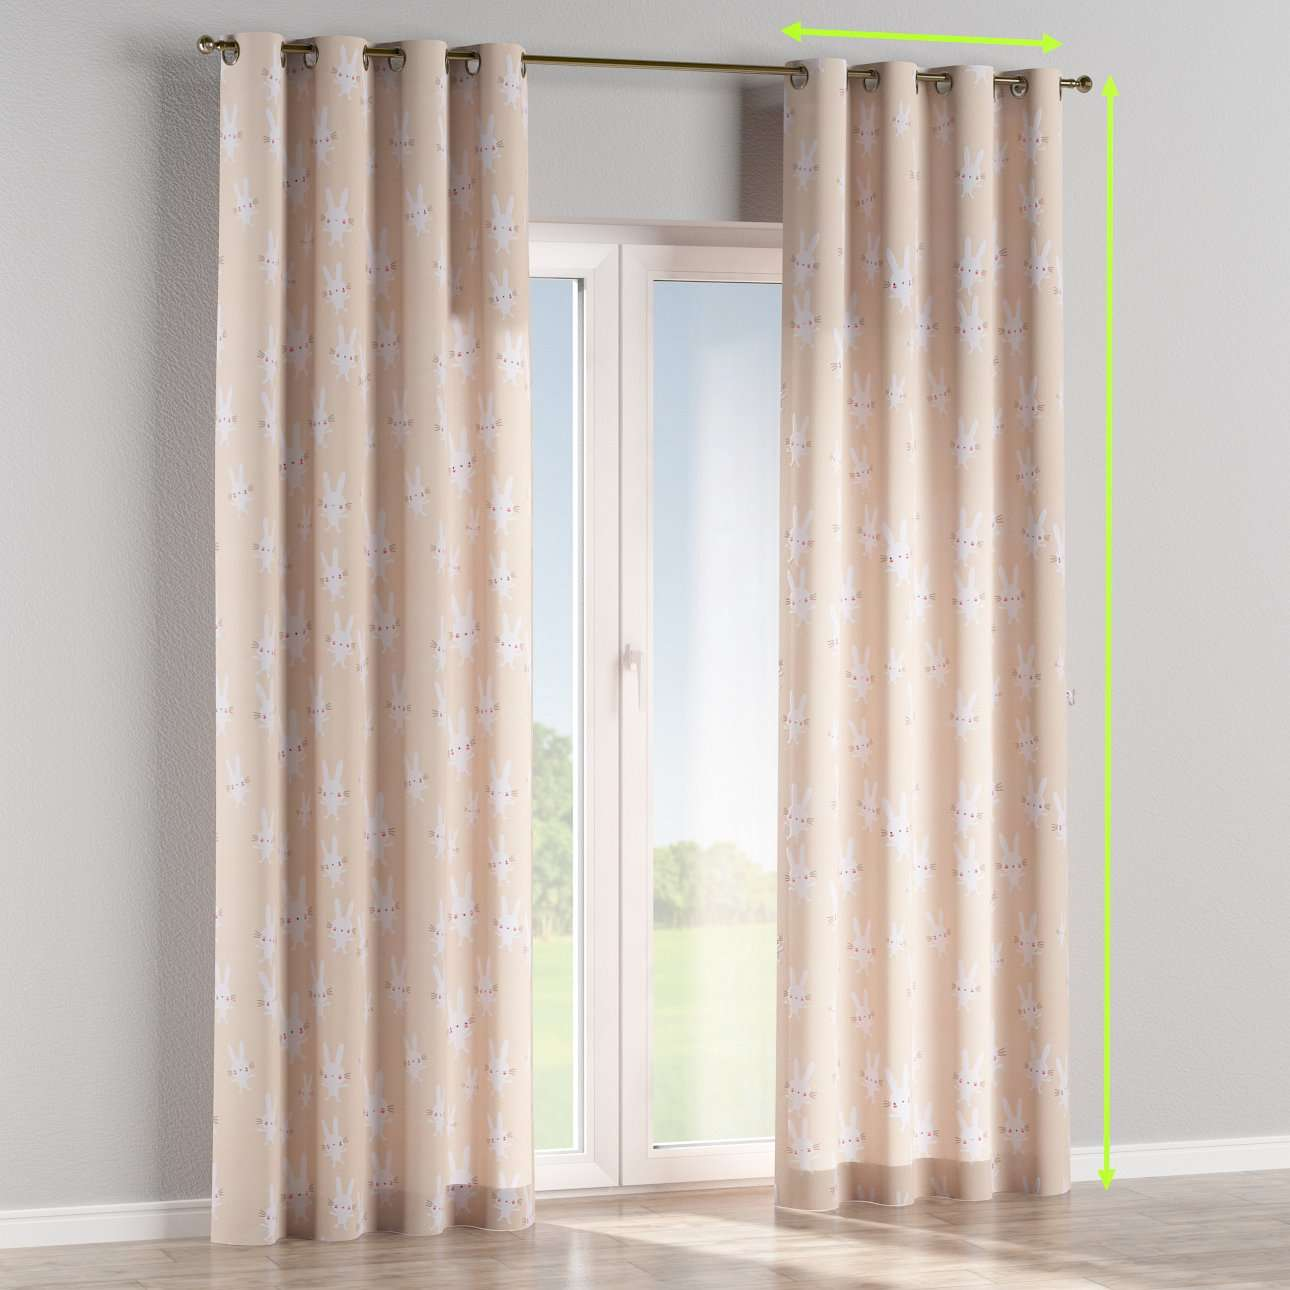 Eyelet lined curtains in collection Apanona, fabric: 151-00